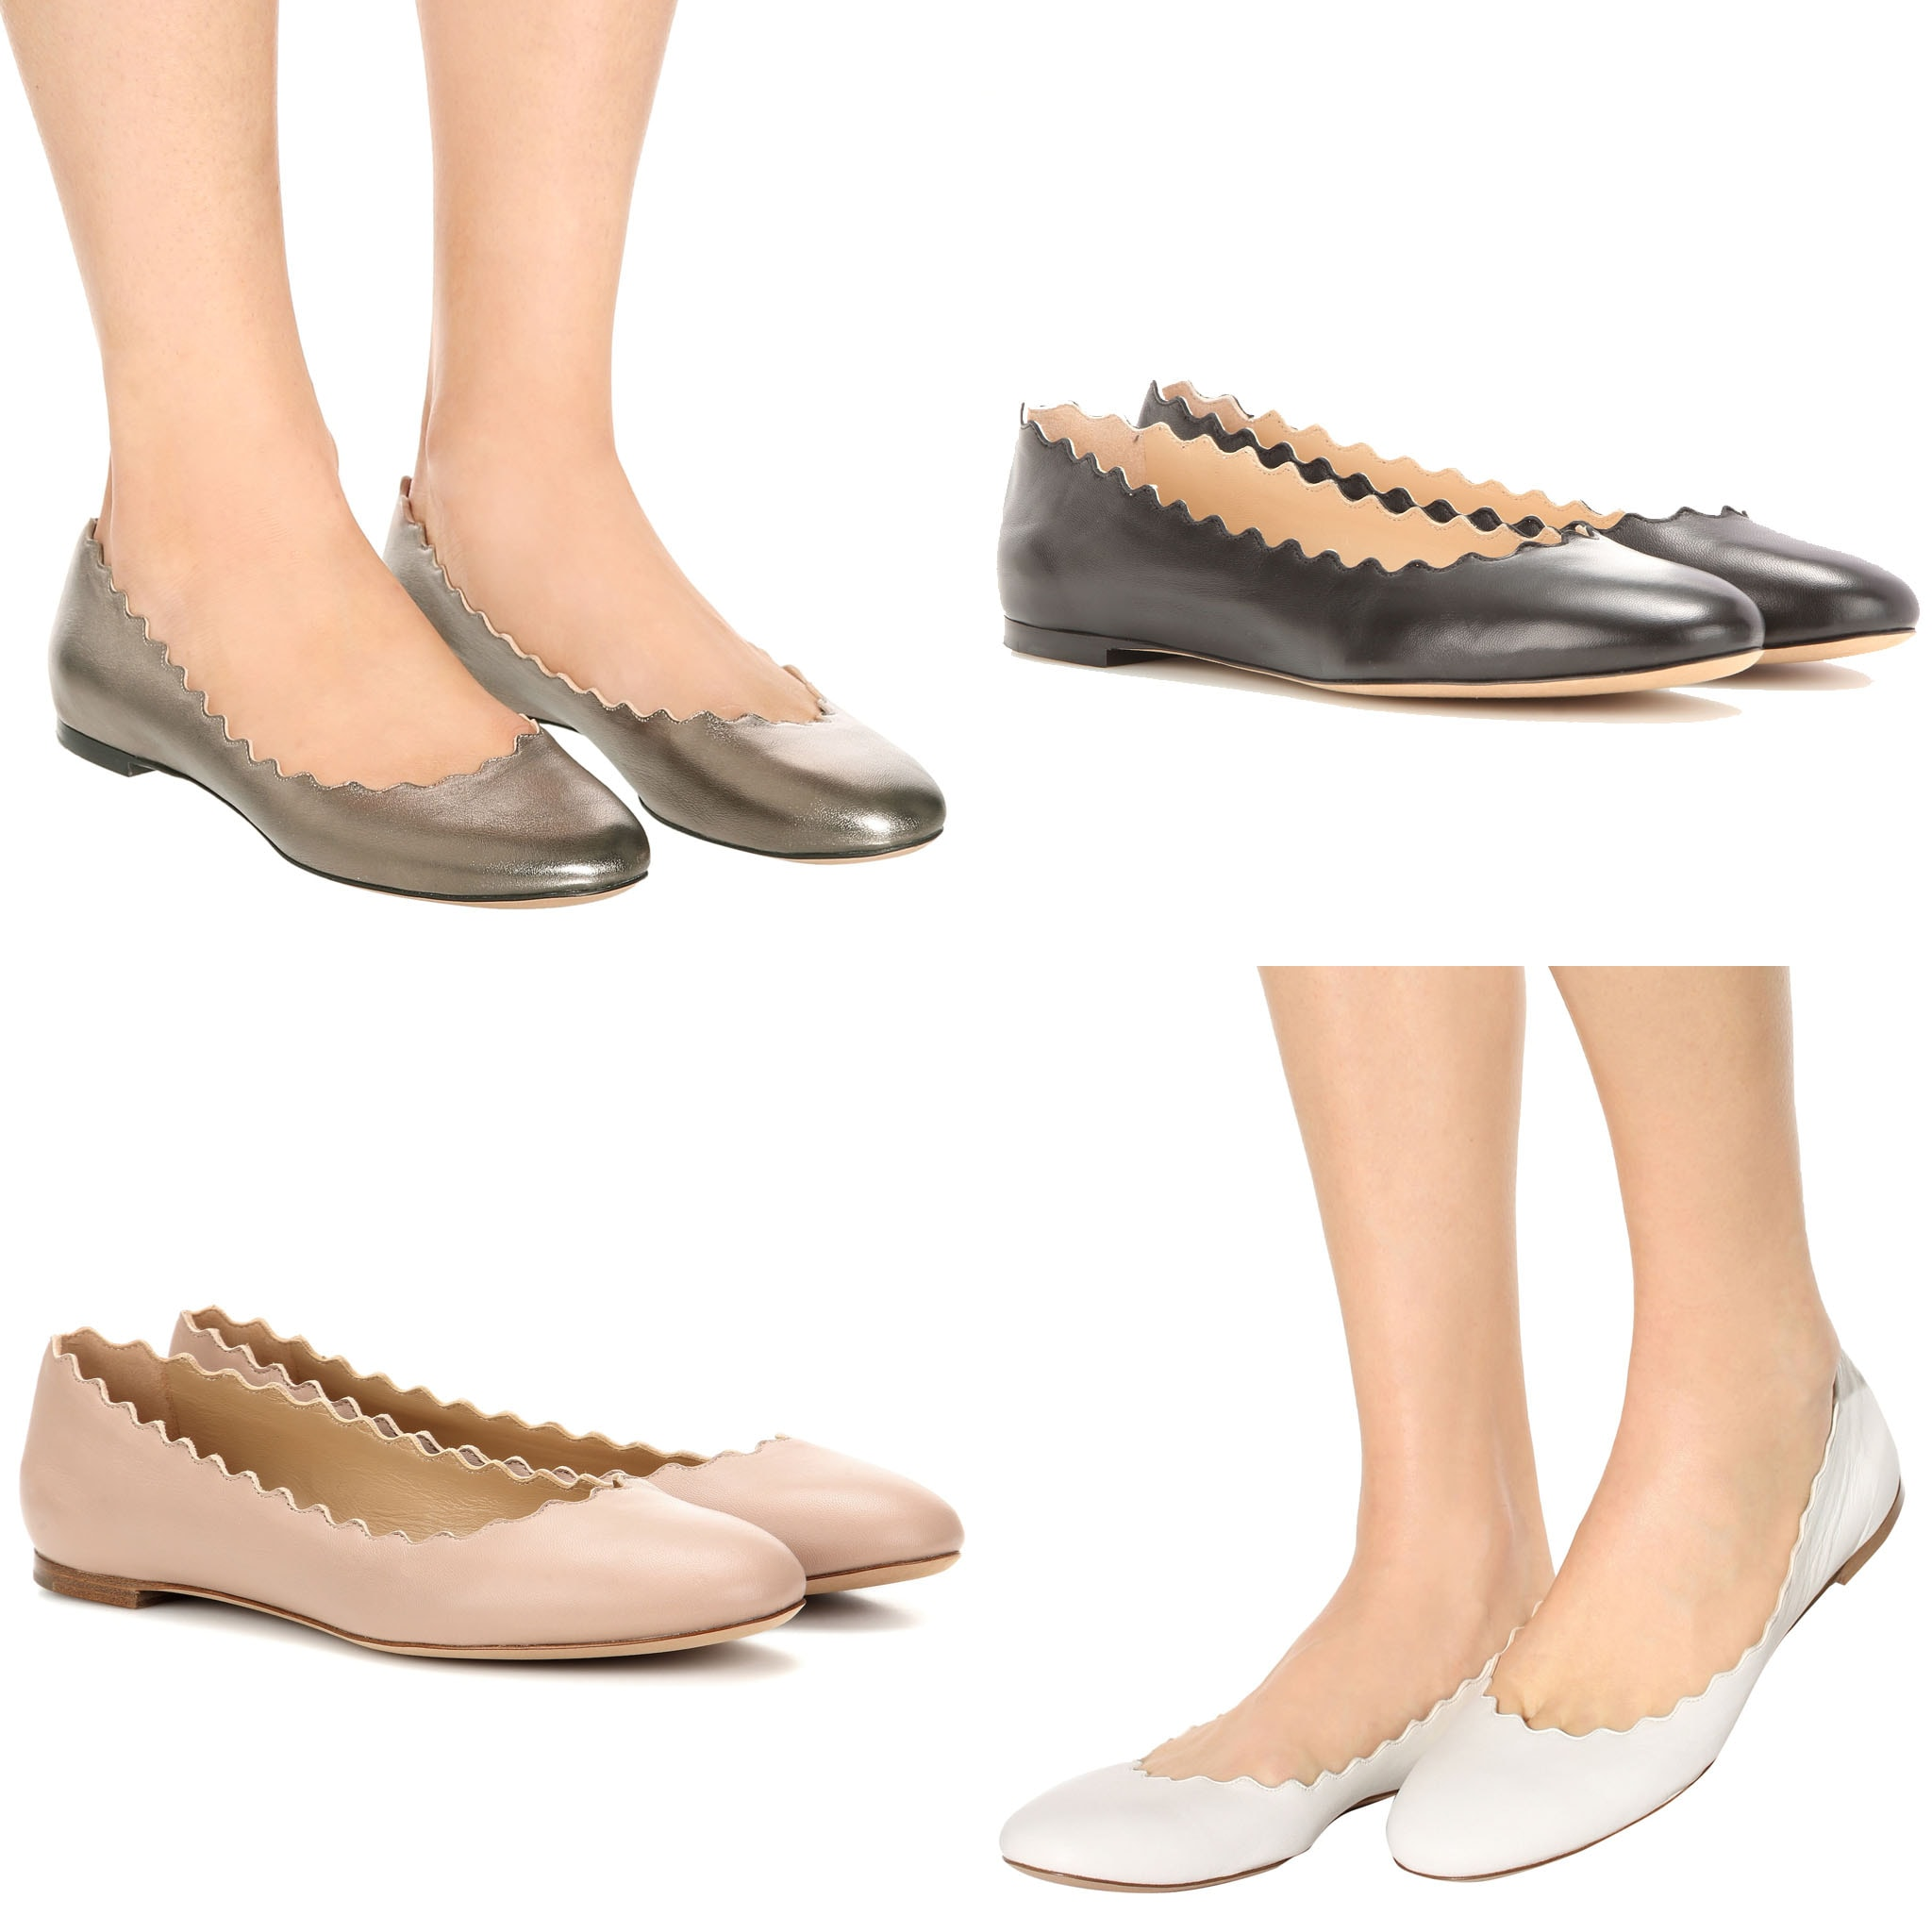 Chloe's Lauren offers timeless elegance and comfort with scalloped edging and a comfy flat sole